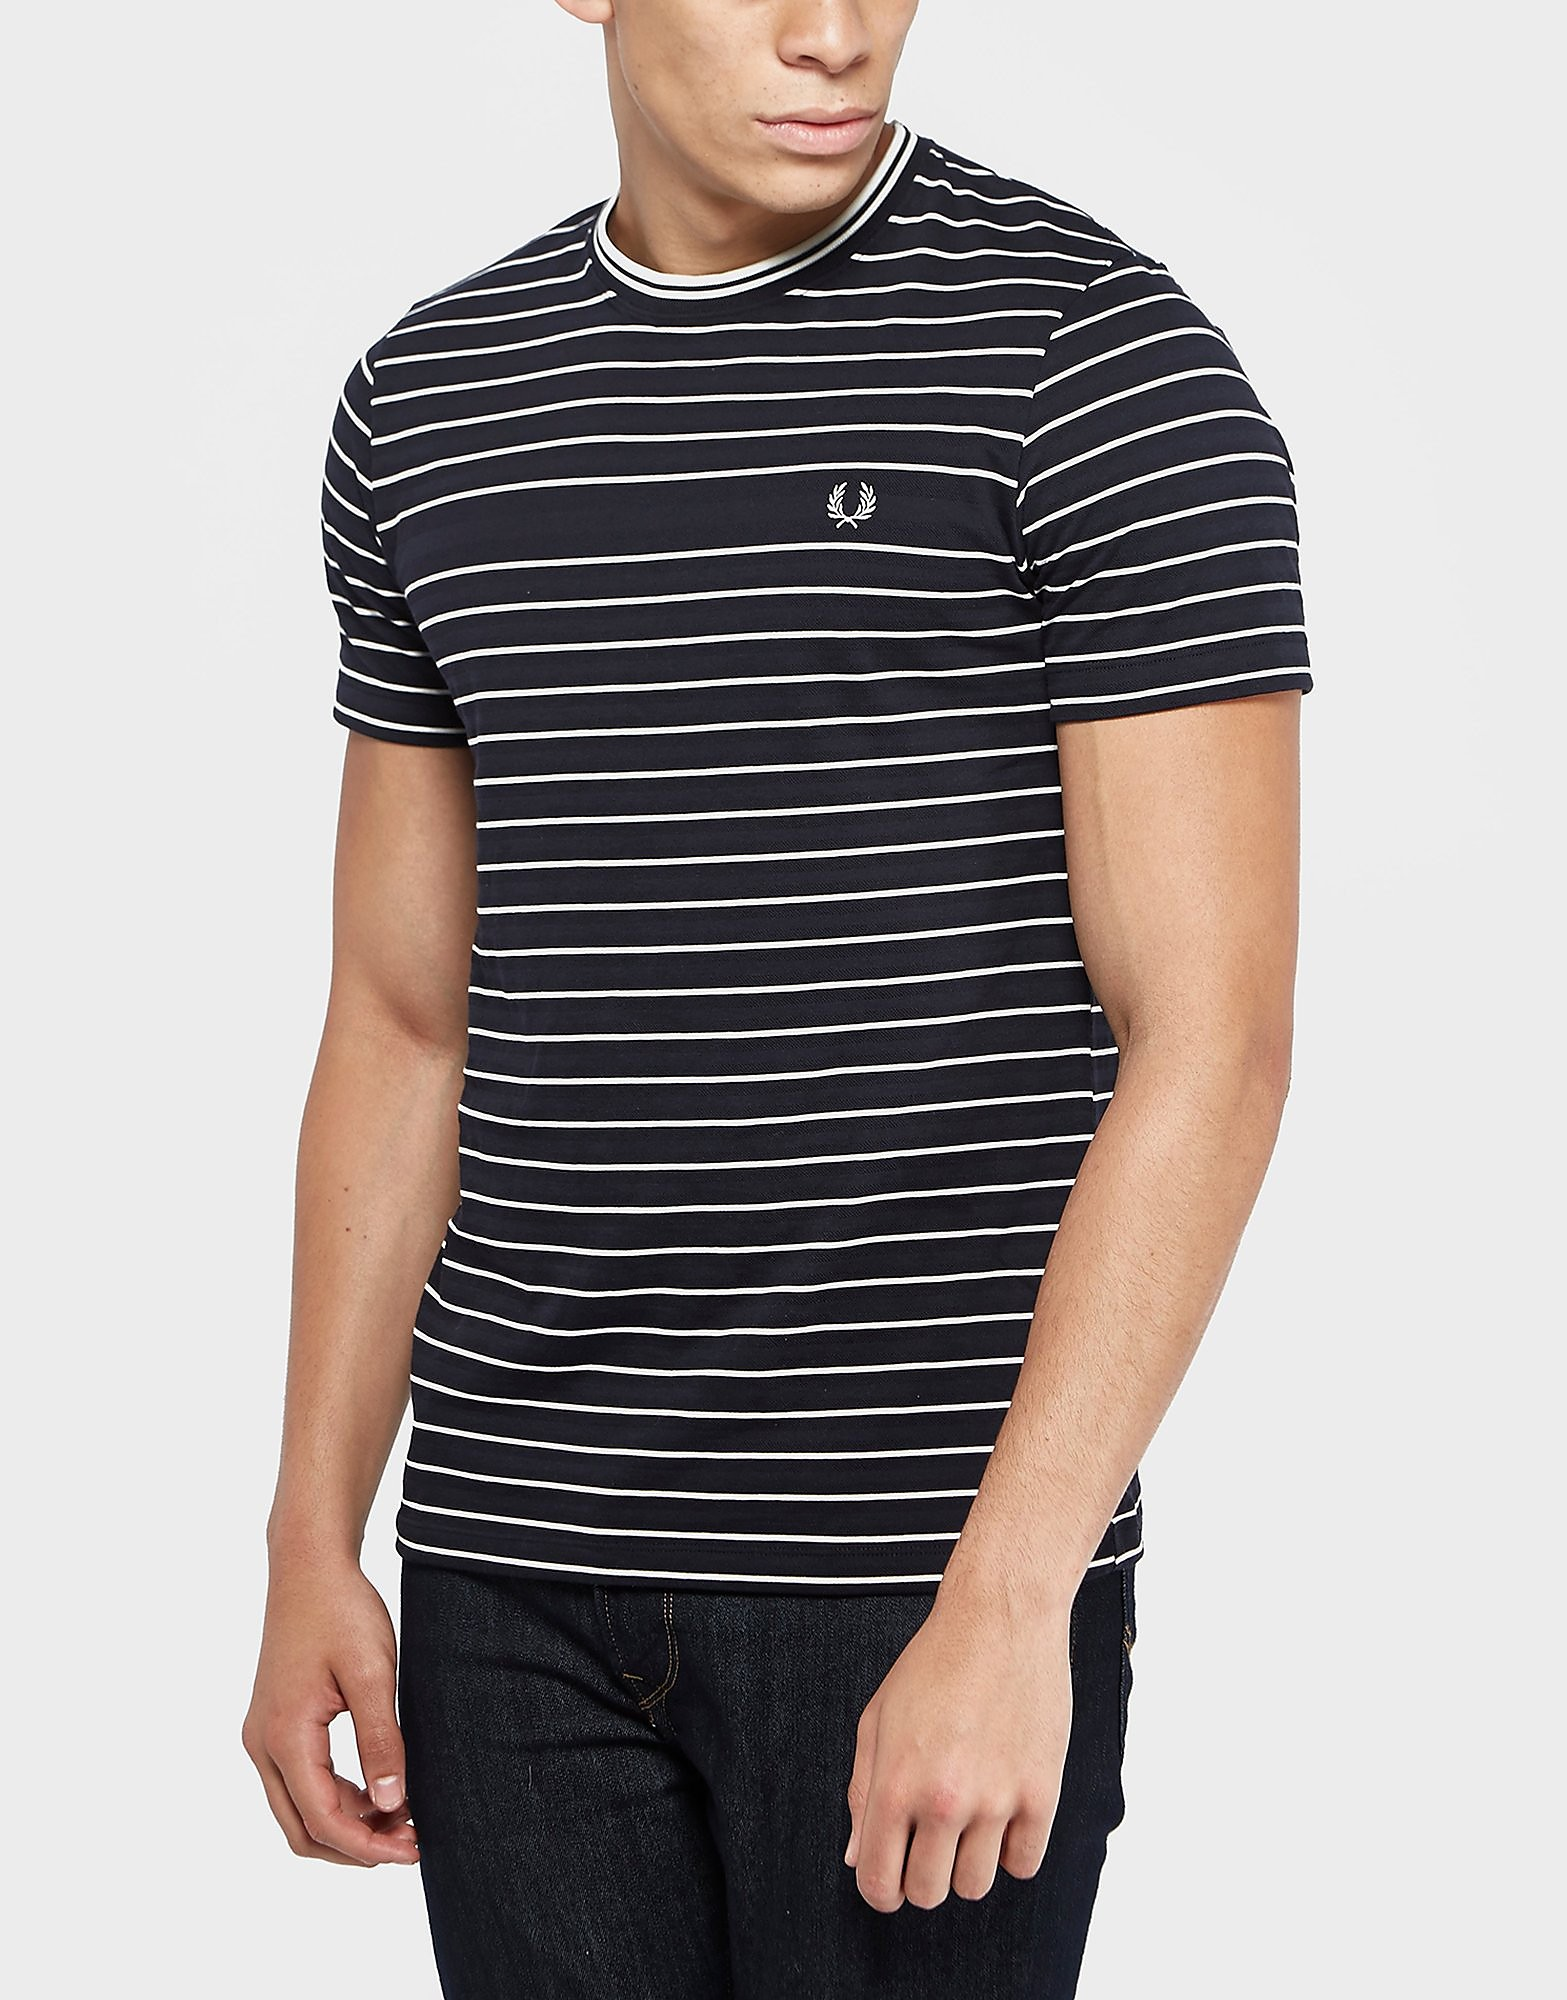 Fred Perry Pique Stripe Short Sleeve T-Shirt